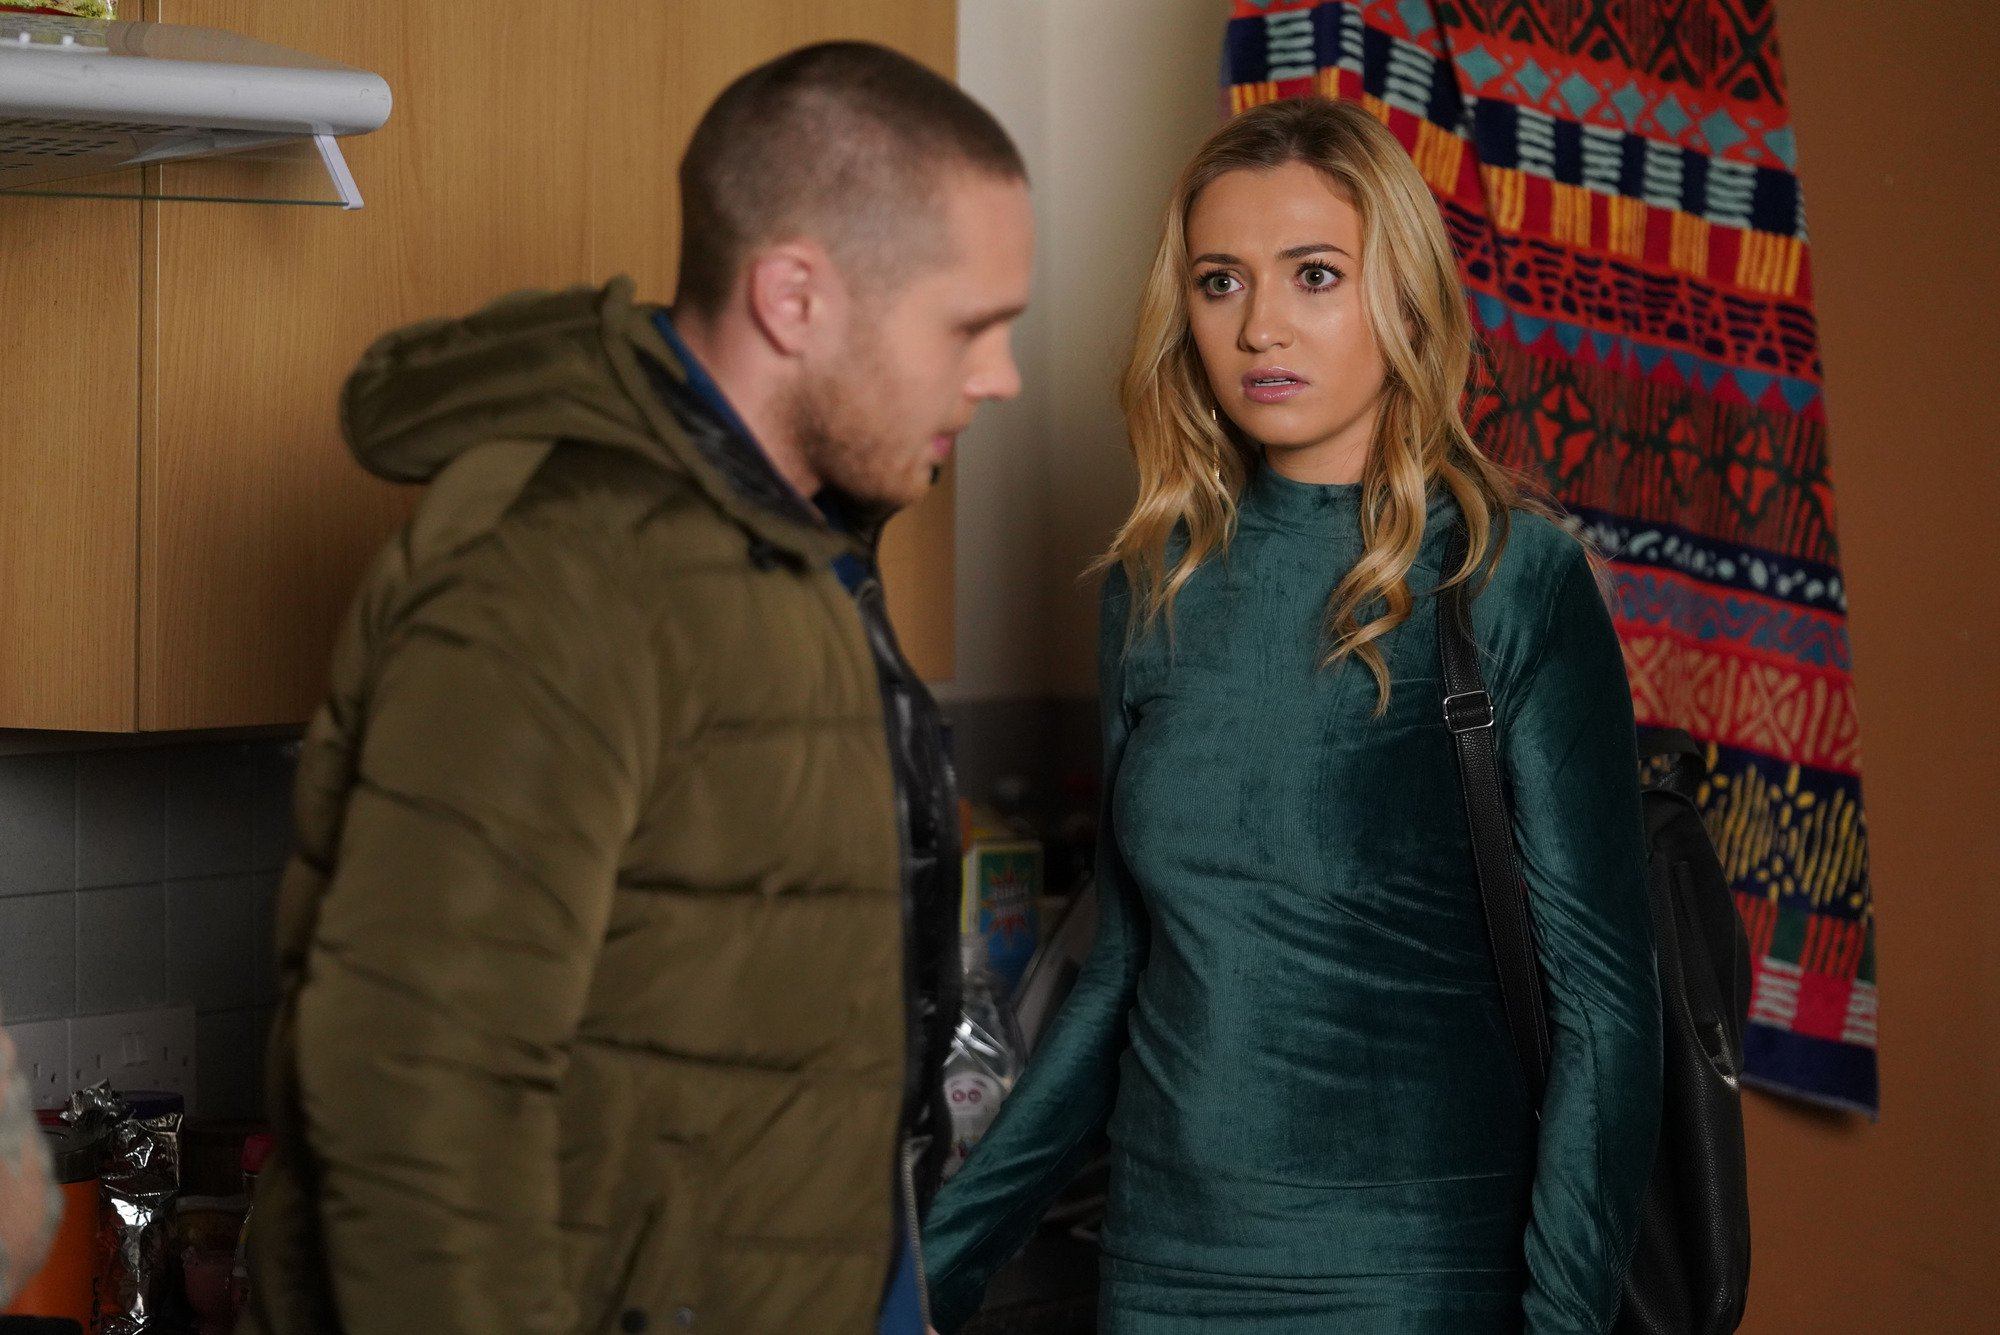 WARNING: Embargoed for publication until 00:00:01 on 15/01/2019 - Programme Name: EastEnders - January - March 2019 - TX: 25/01/2019 - Episode: EastEnders - January - March - 2019 - 5857 (No. n/a) - Picture Shows: *STRICTLY NOT FOR PUBLICATION UNTIL 00:01HRS TUESDAY 15th JANUARY 2019* Louise snubs Keanu when he tries to let her down gently. Keanu Taylor (DANNY WALTERS), Louise Mitchell (TILLY KEEPER) - (C) BBC - Photographer: Kieron McCarron